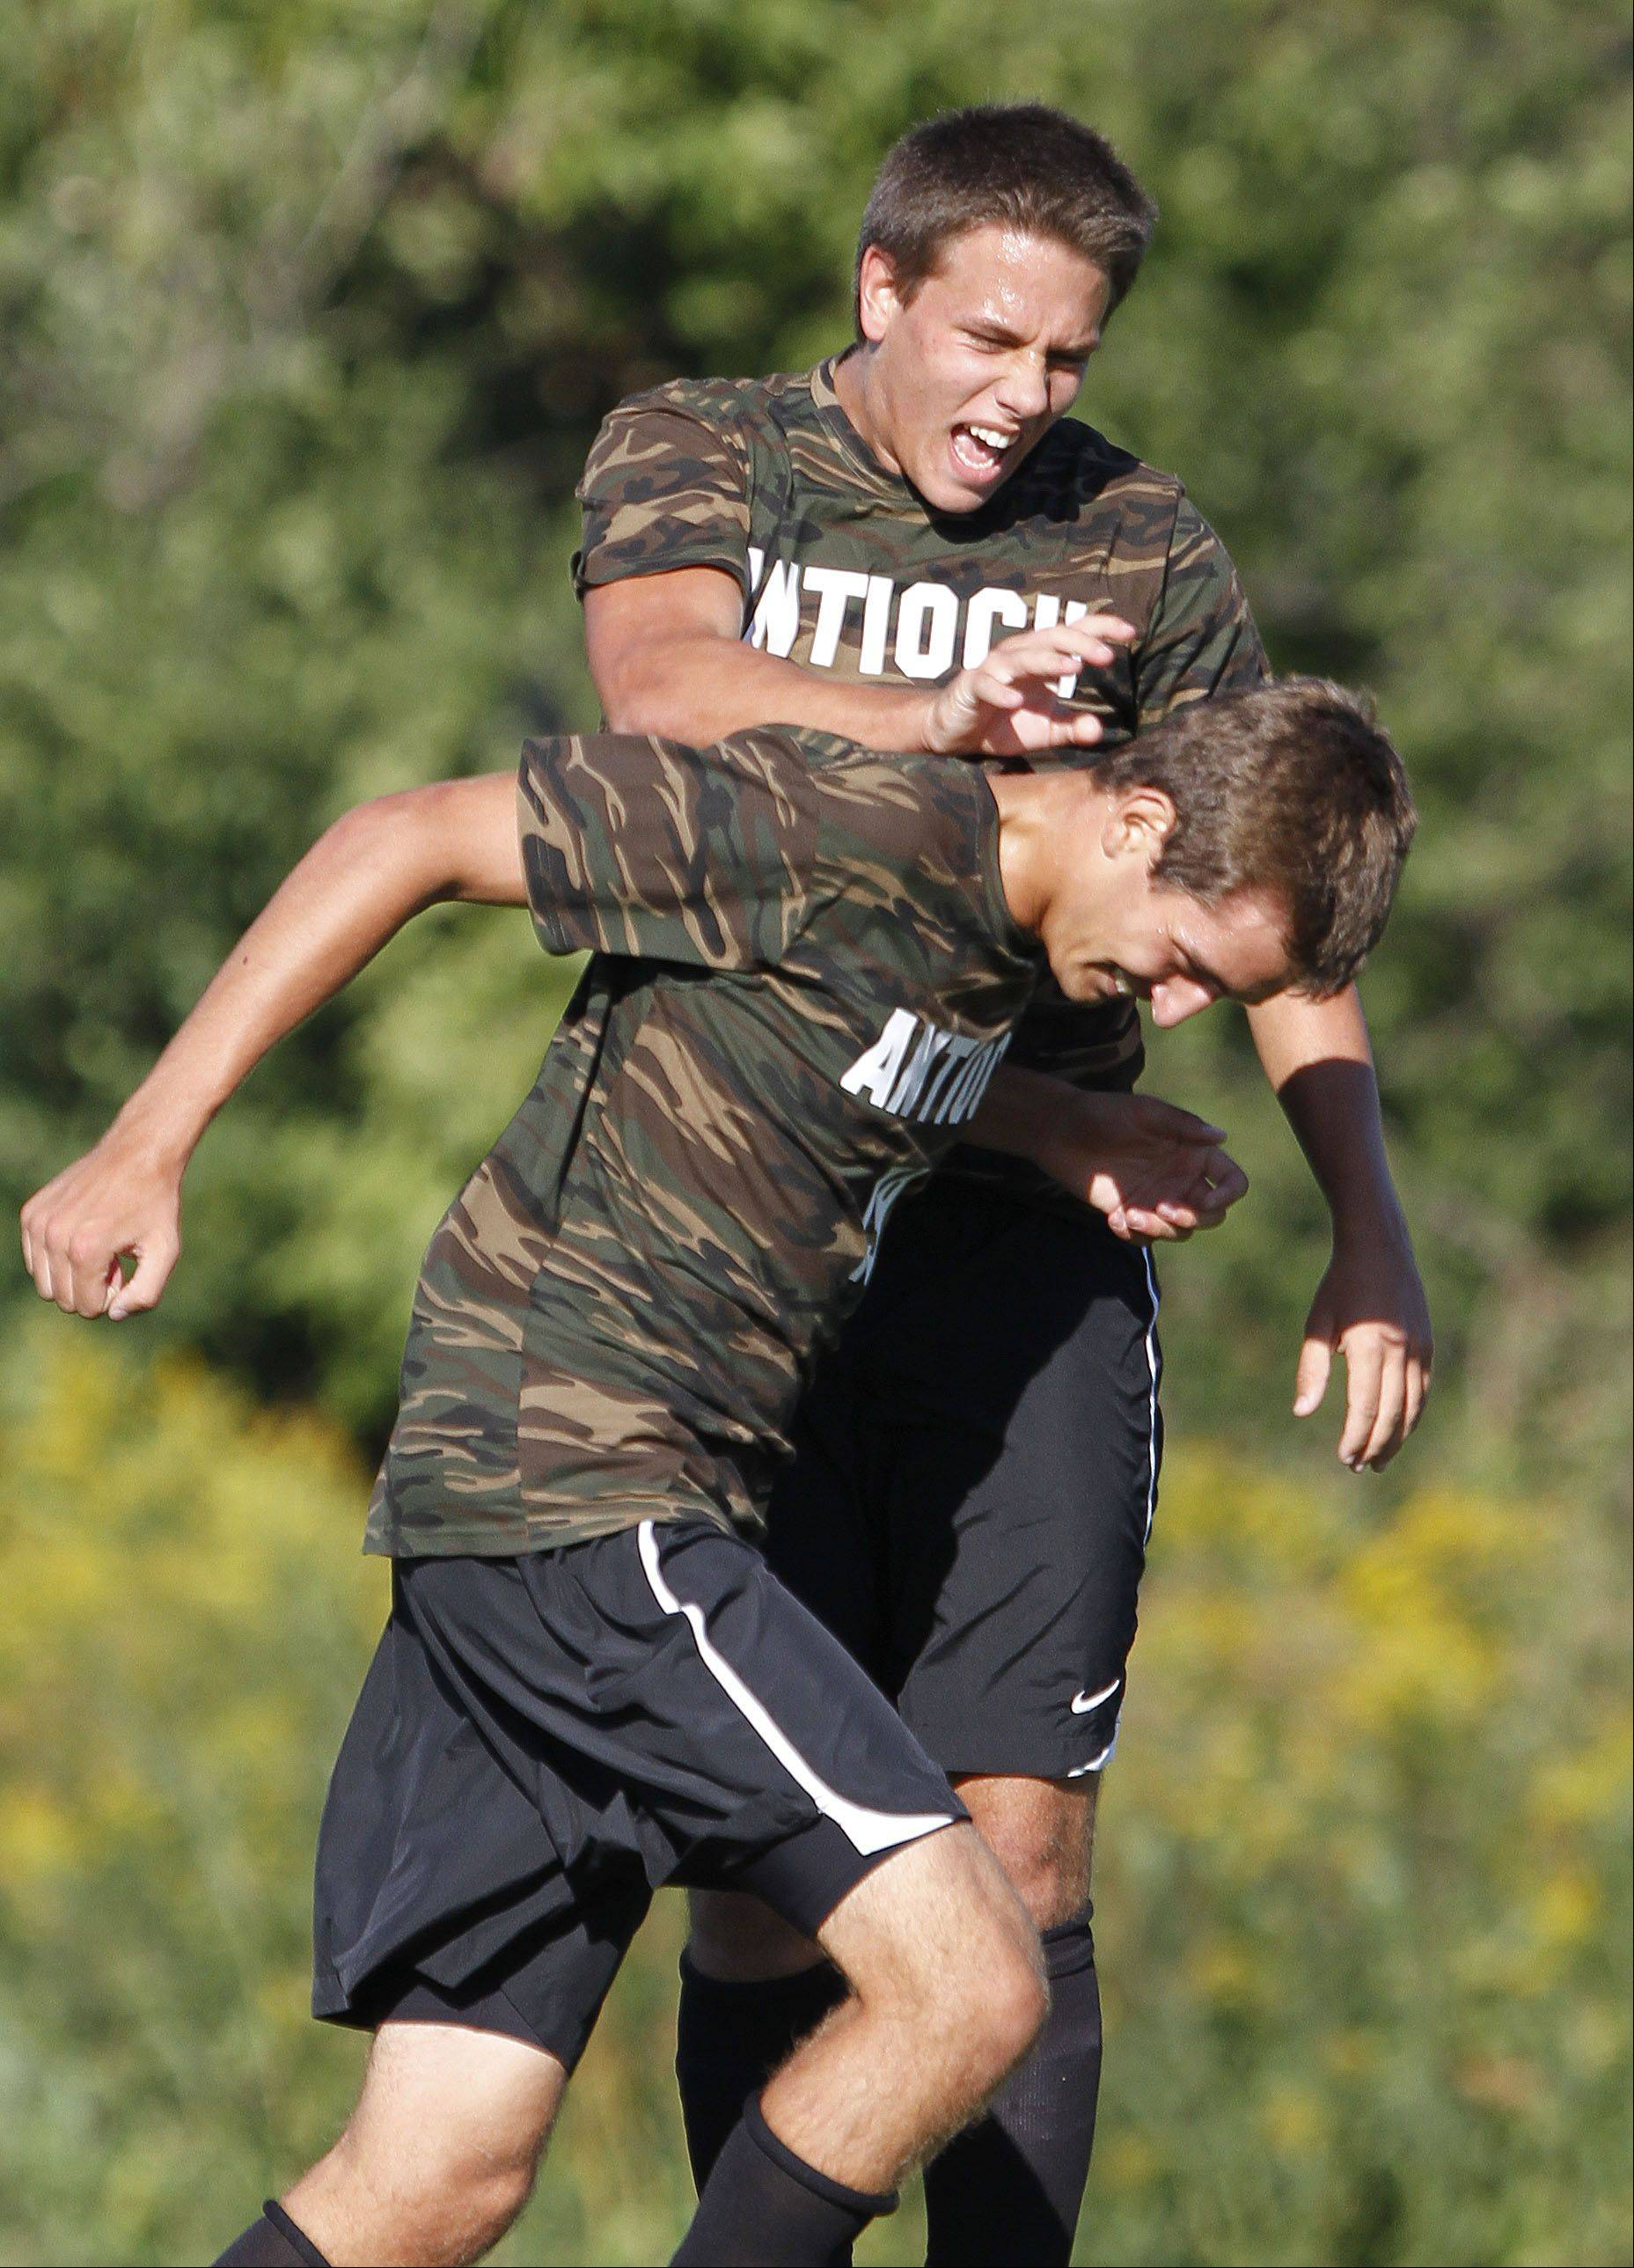 Antioch's Erik VanTreeck, left, congratulates Nick Brito after his goal against Lakes on Tuesday in Lake Villa.